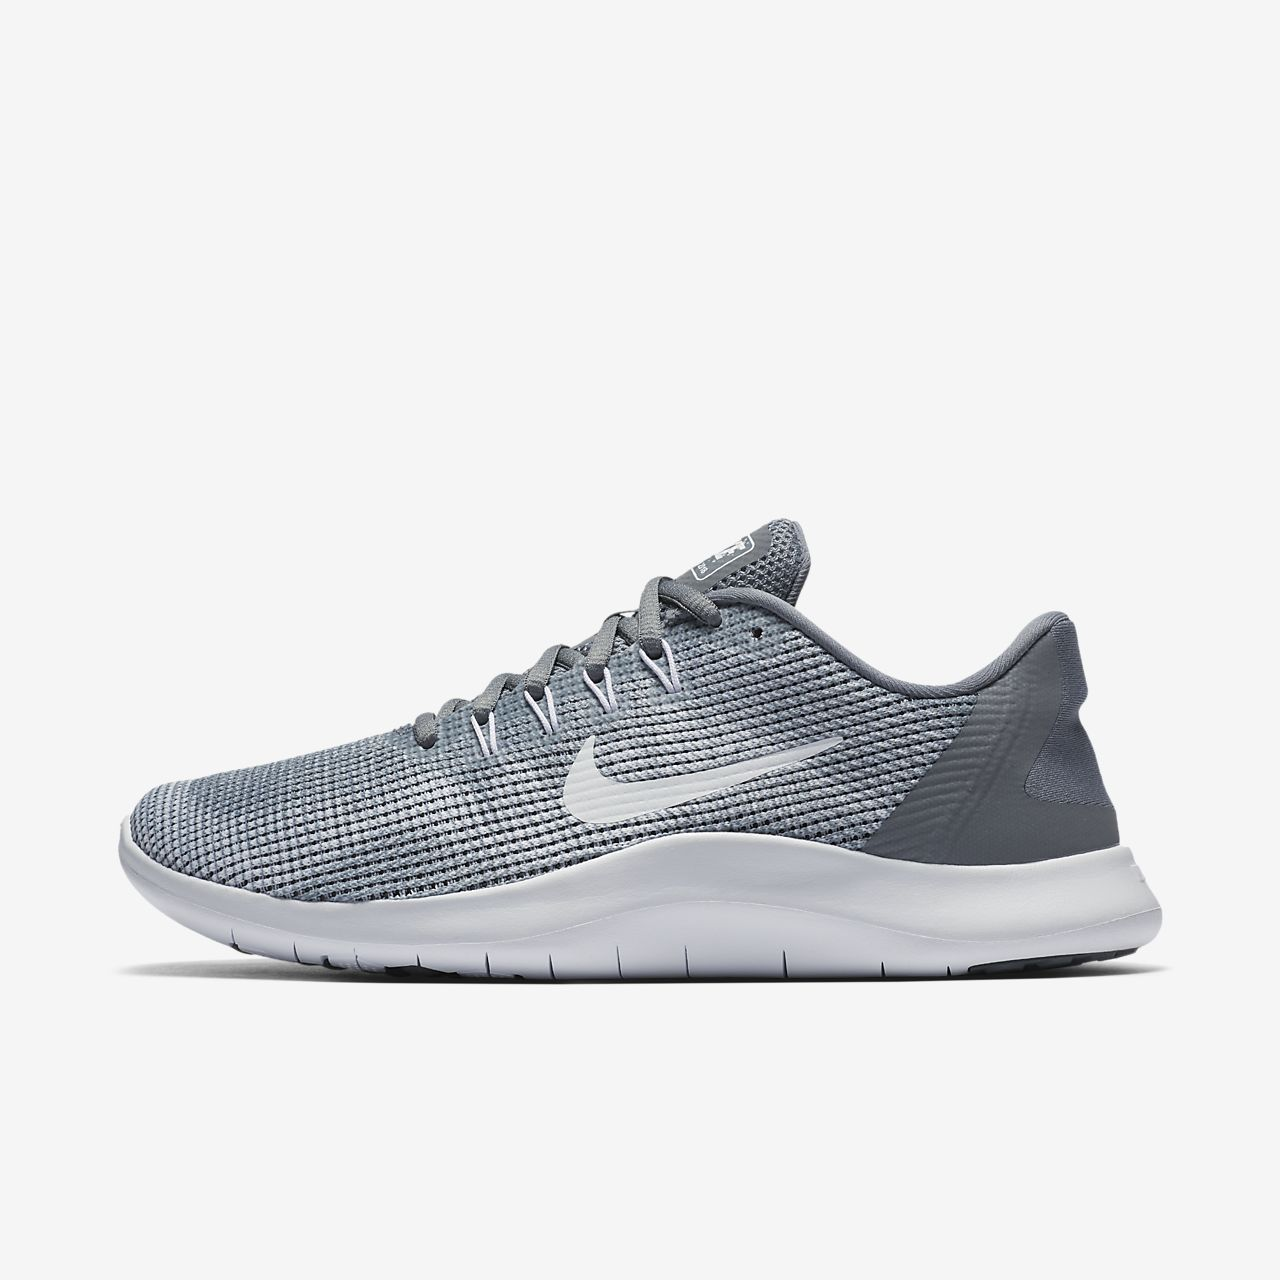 buy online 2574c 79a06 ... Nike Flex RN 2018 Womens Running Shoe